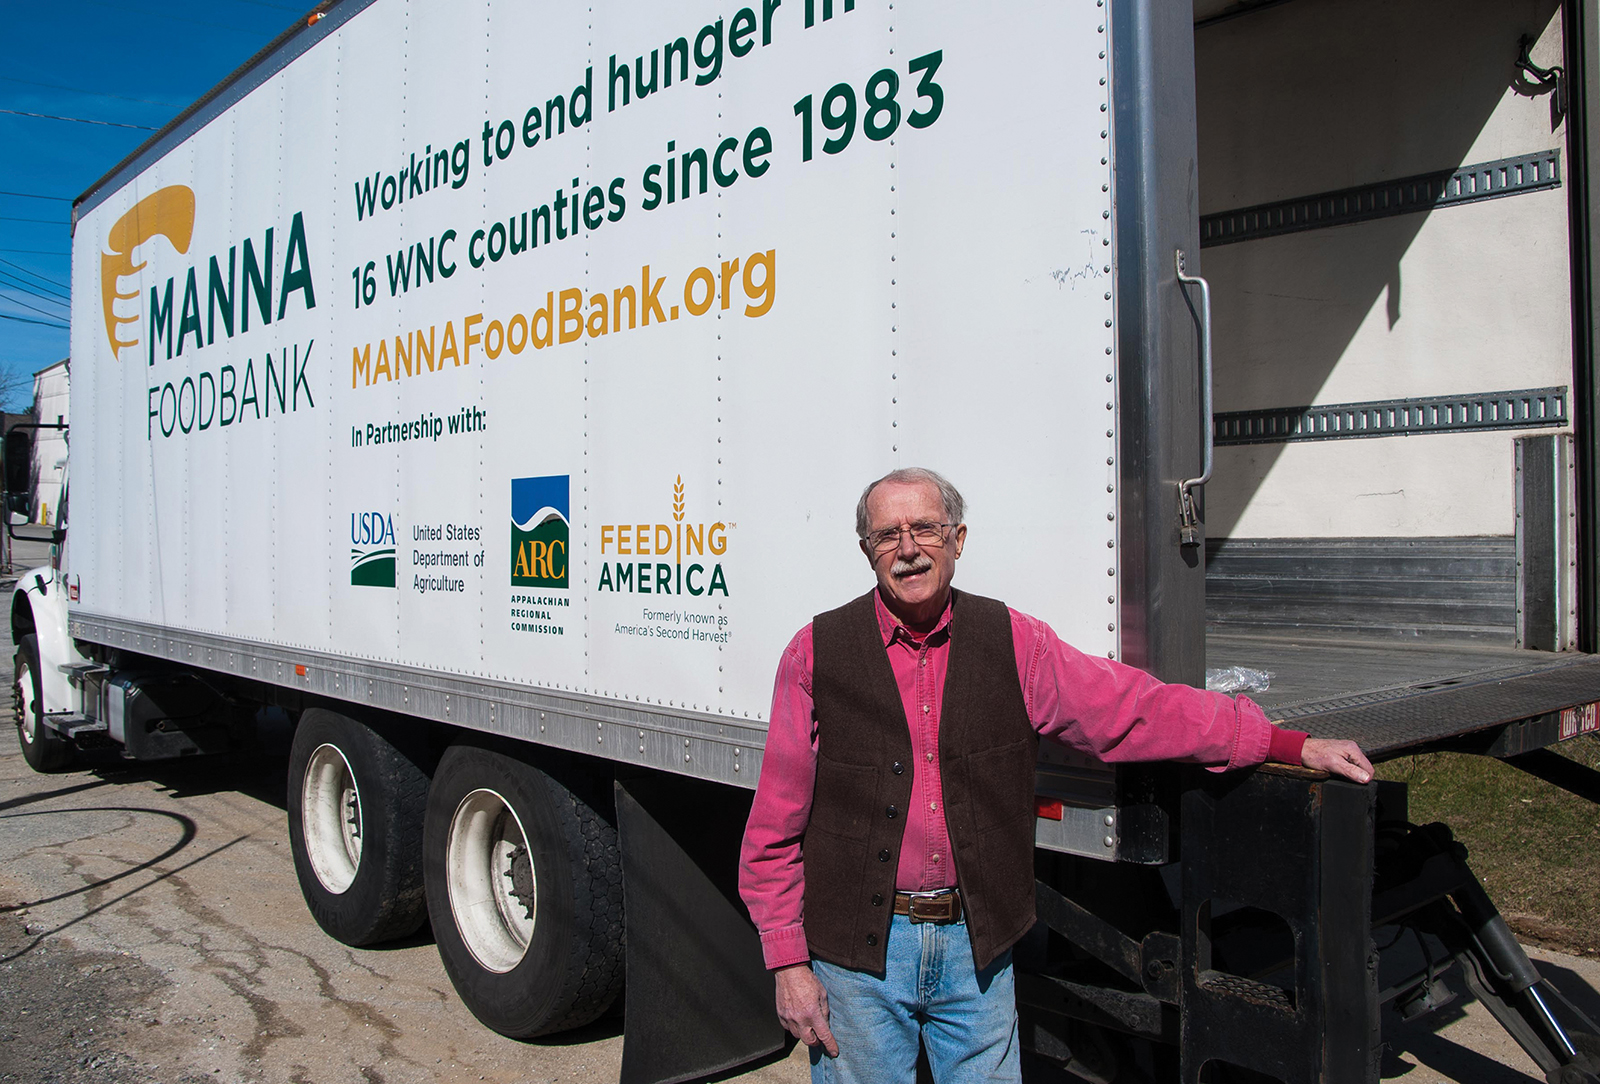 peter-ray-the-food-pantry-highlands-nc